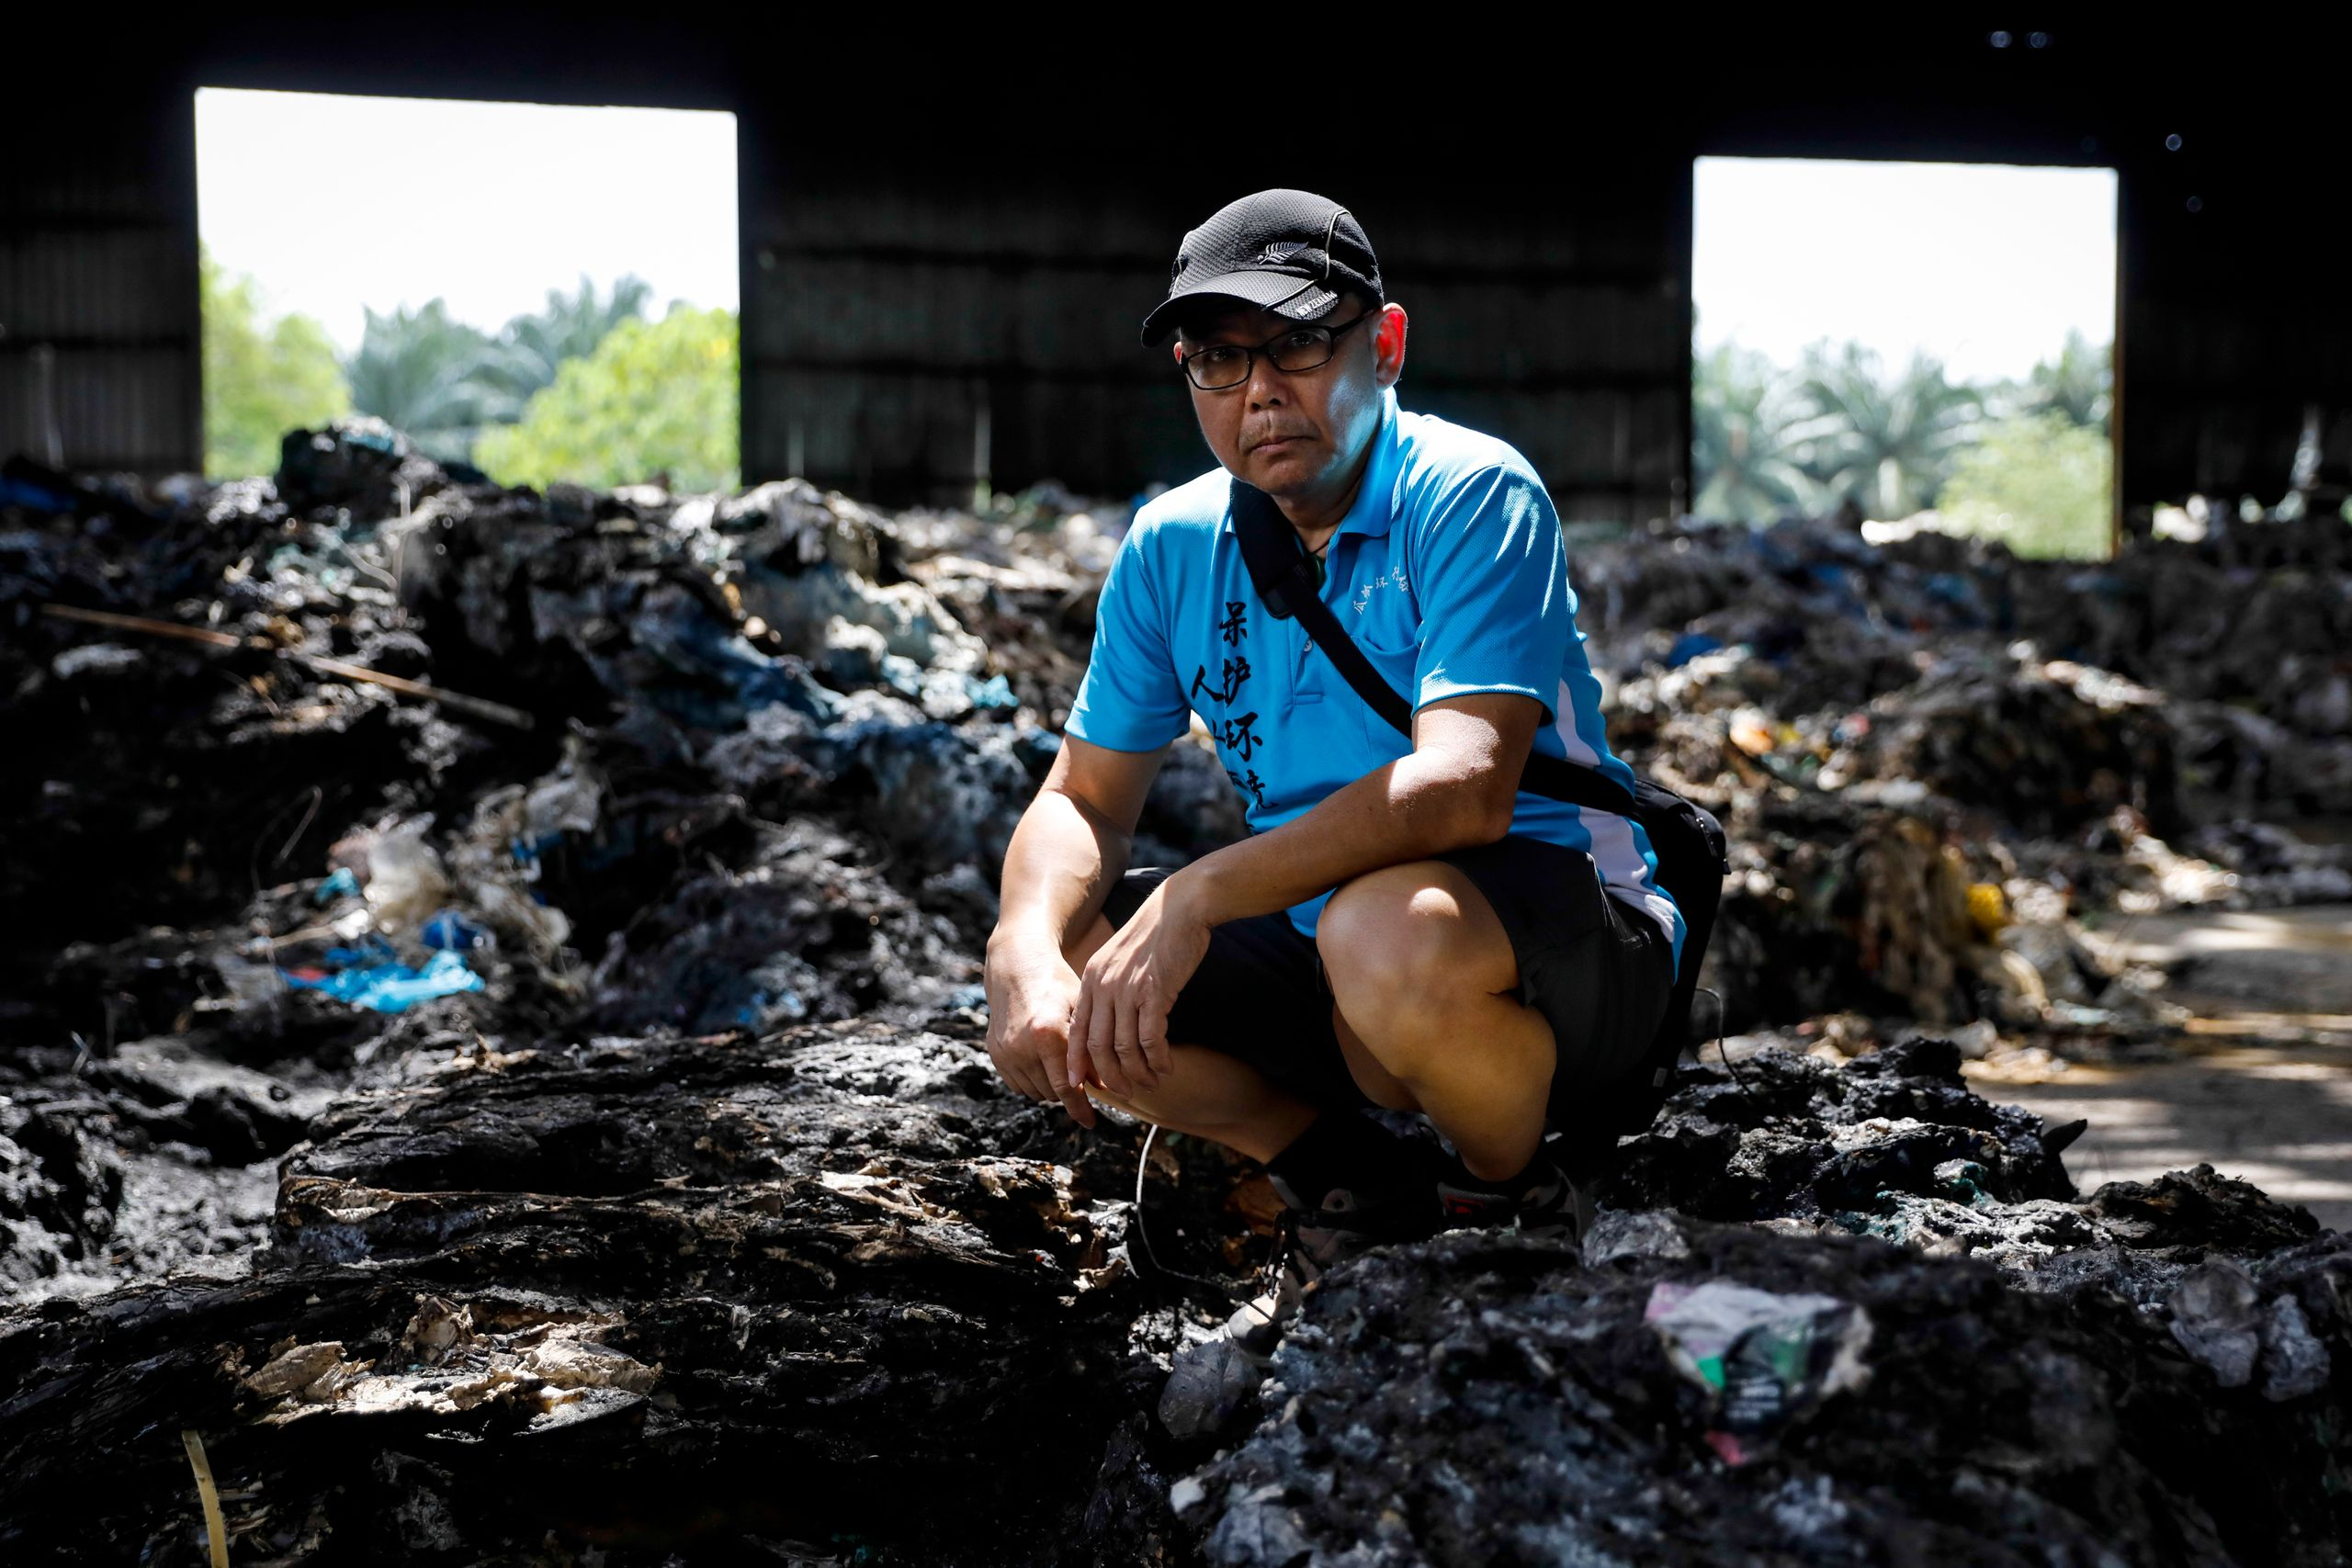 C.K., a volunteer, poses for a portrait at an illegal plastic recycling factory in Kuala Langat.